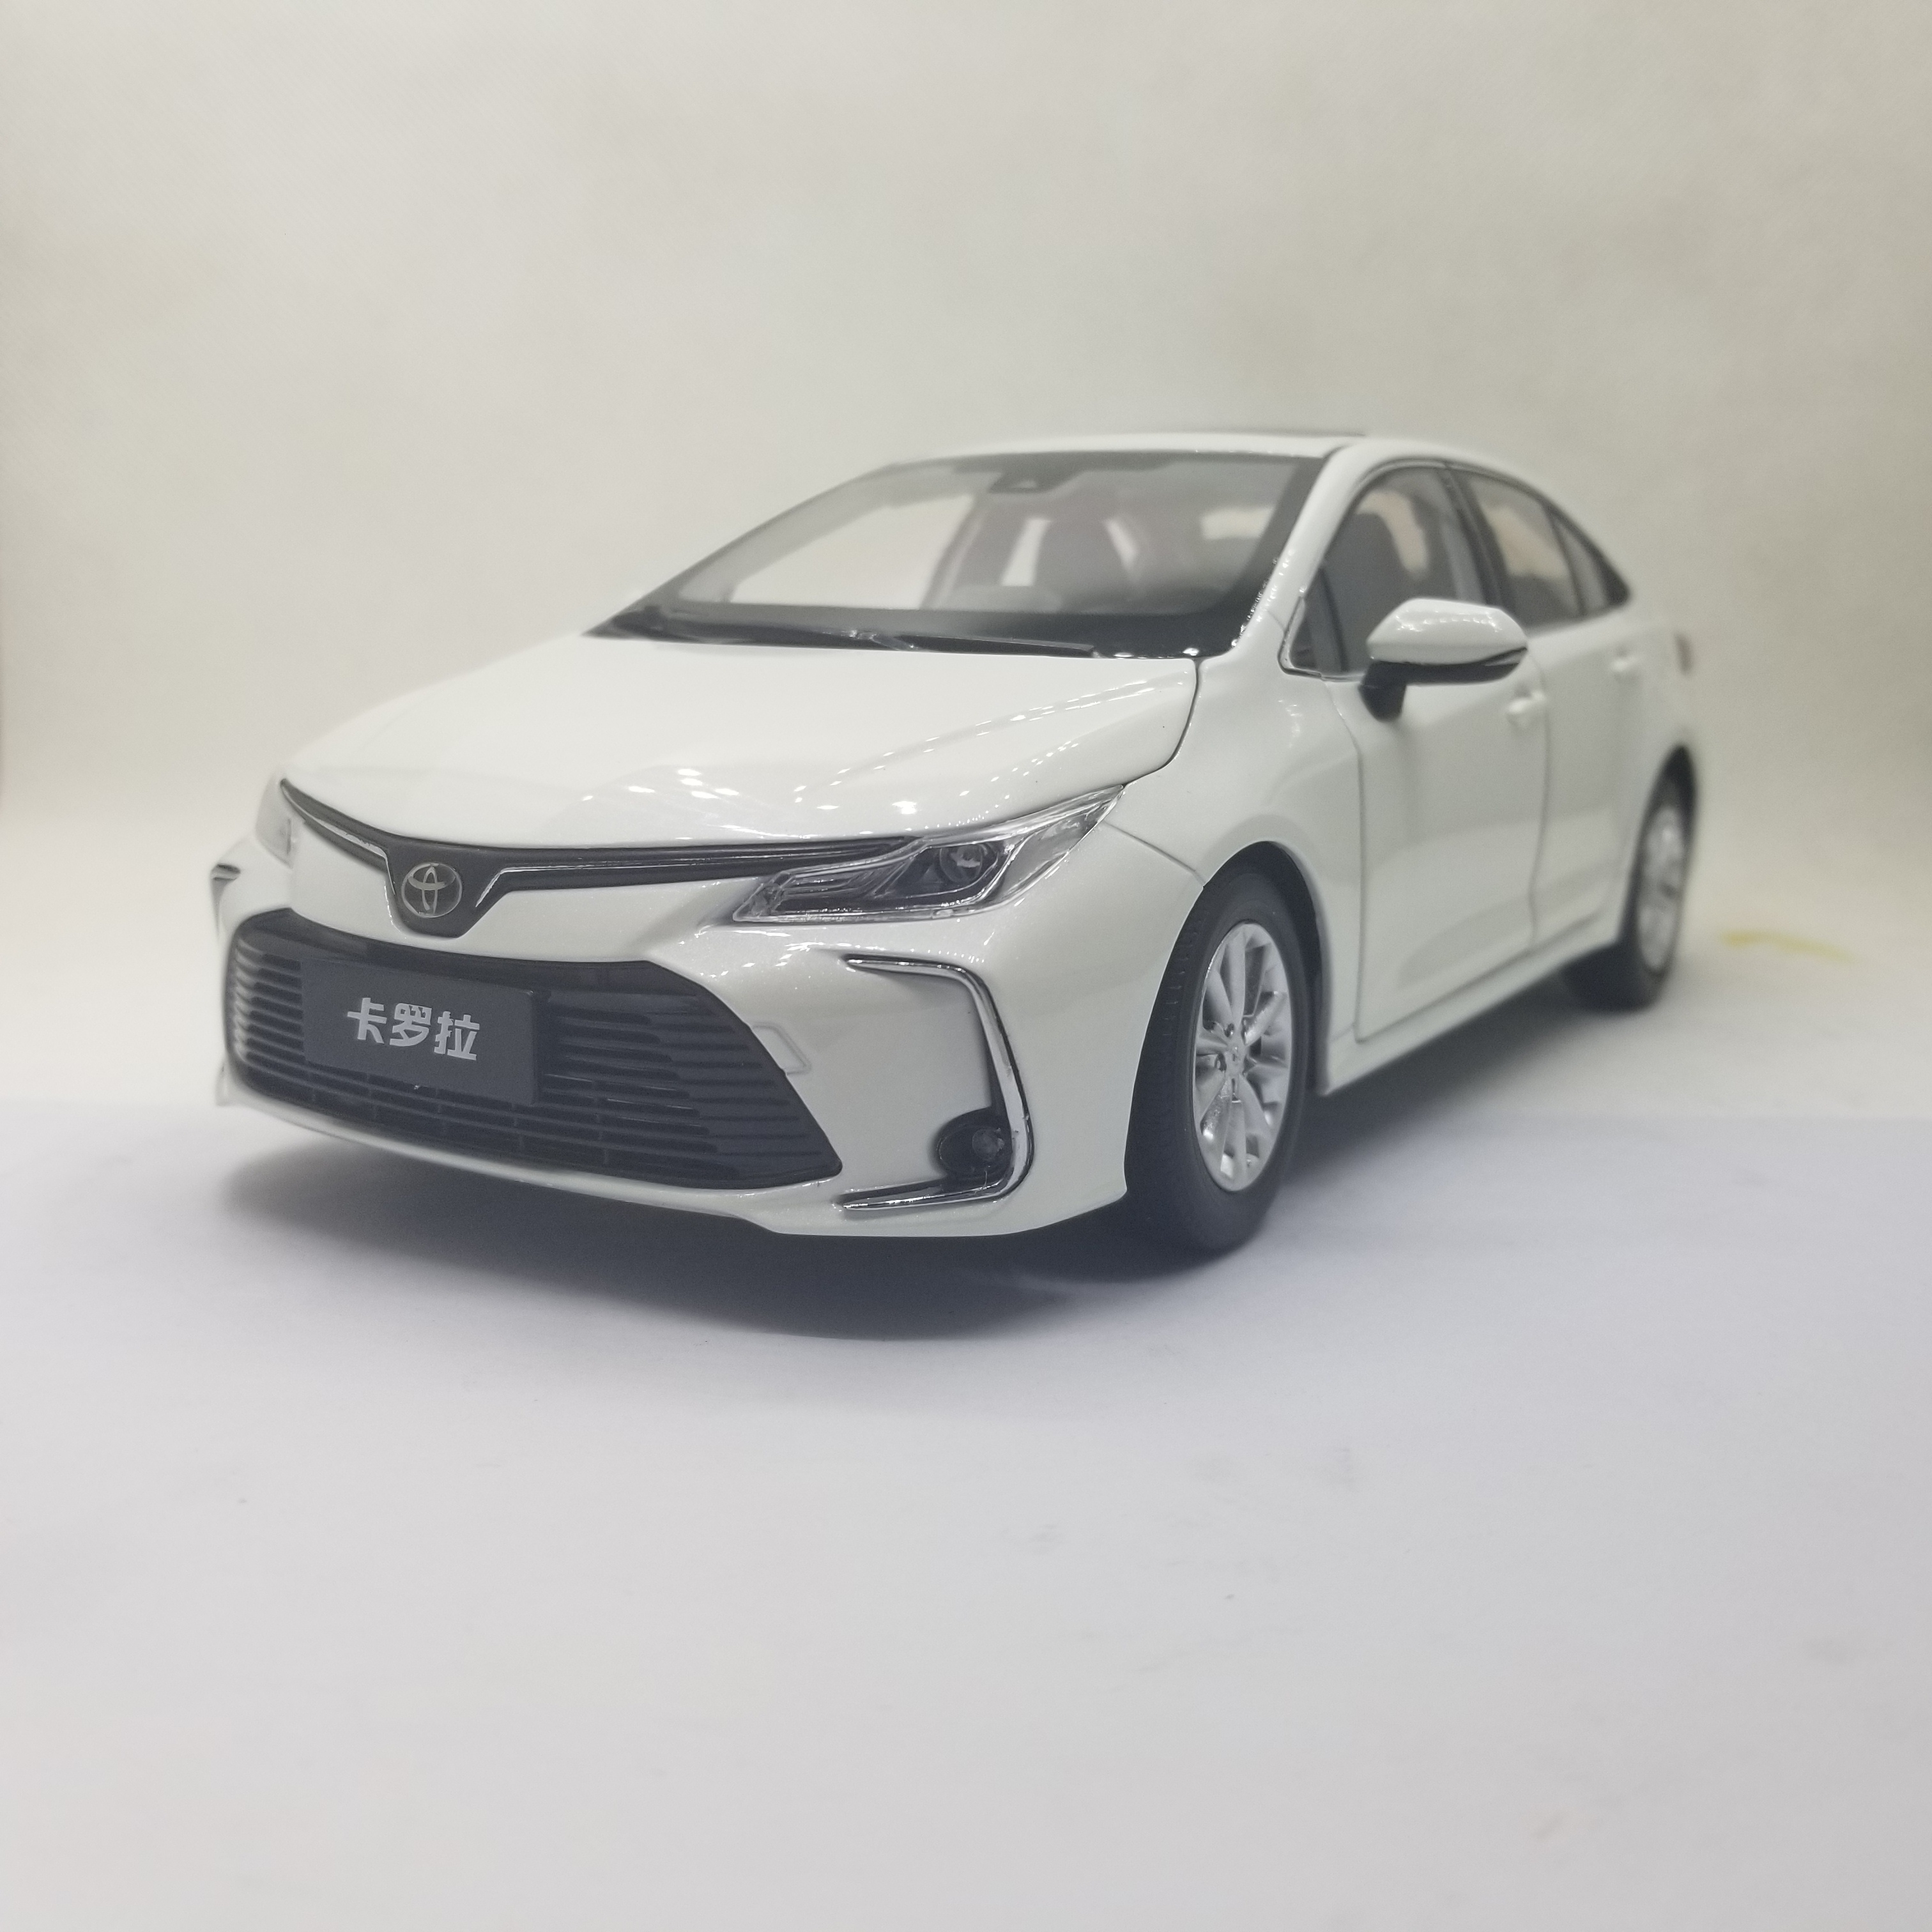 1:18 Diecast Model for Toyota Corolla 2019 White Sedan Alloy Toy Car Miniature Collection Gifts Hot Selling Altis